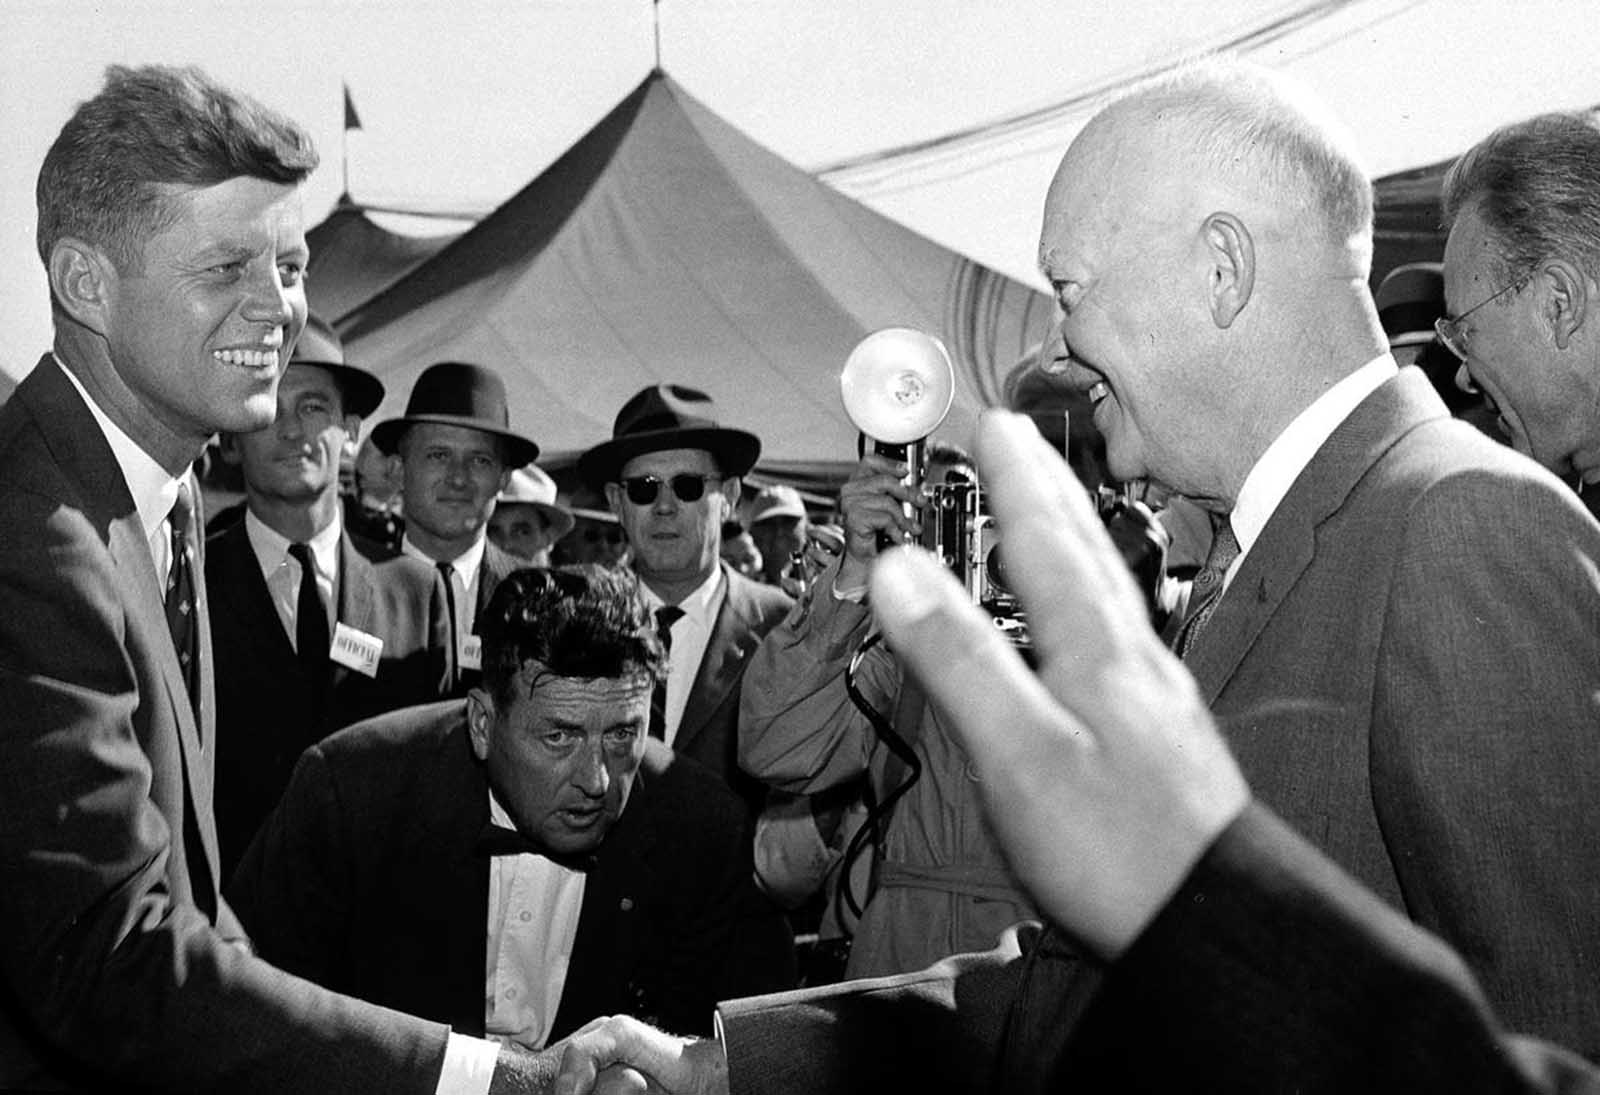 Senator John F. Kennedy greets President Dwight D. Eisenhower on his arrival for festivities at the National Corn Picking Contest near Cedar Rapids, Iowa, on October 17, 1958.